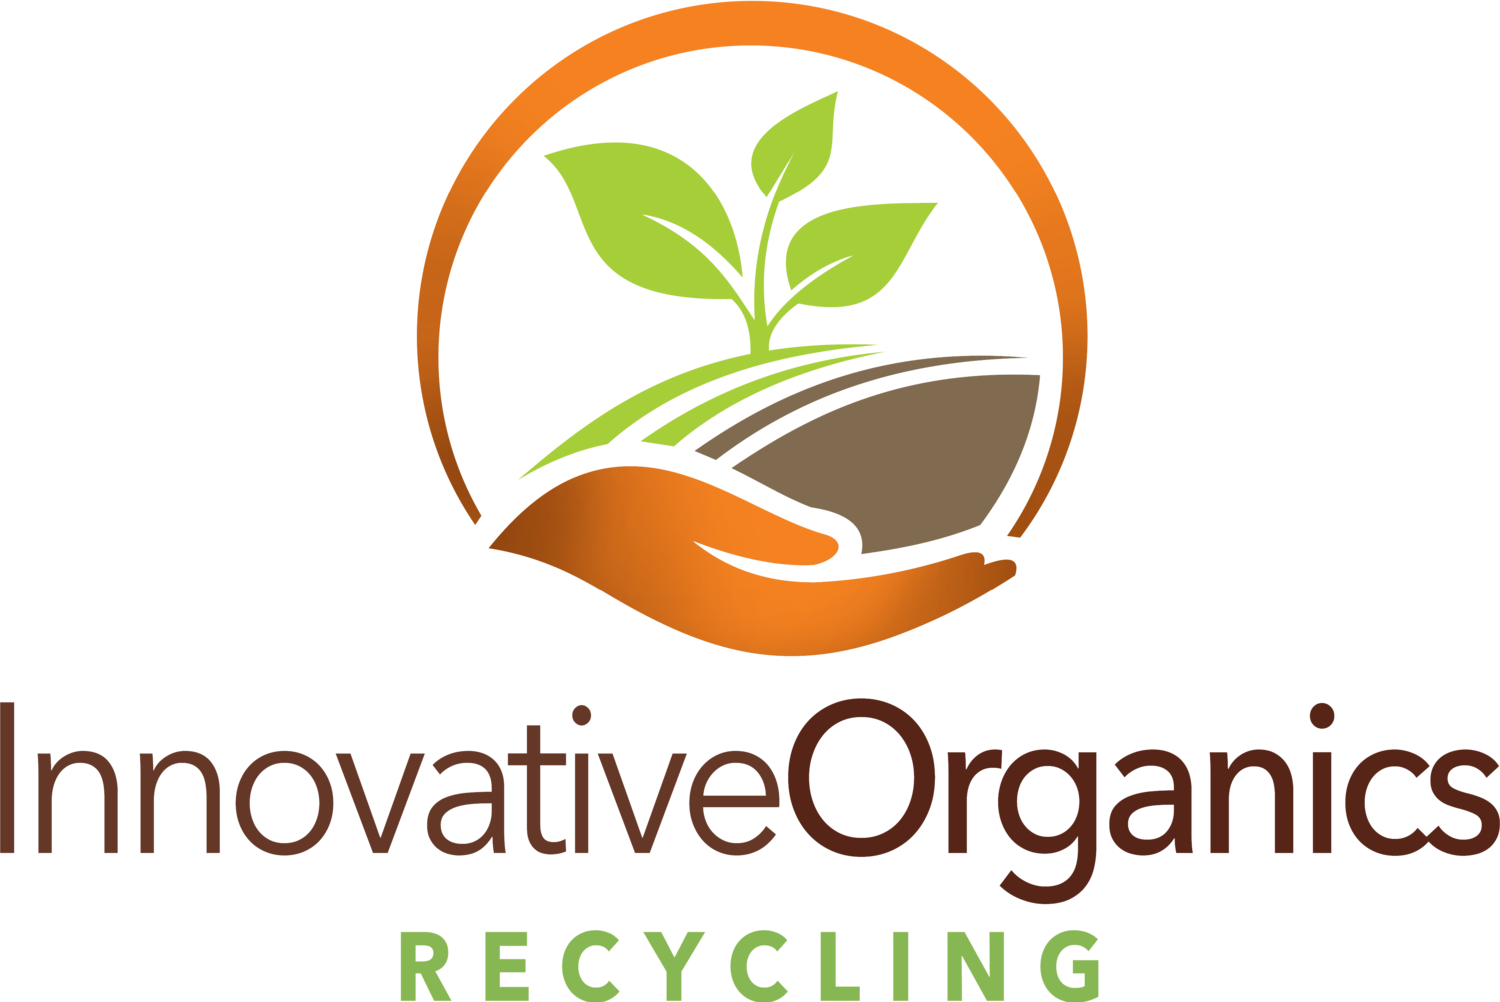 Innovative Organics Recycling